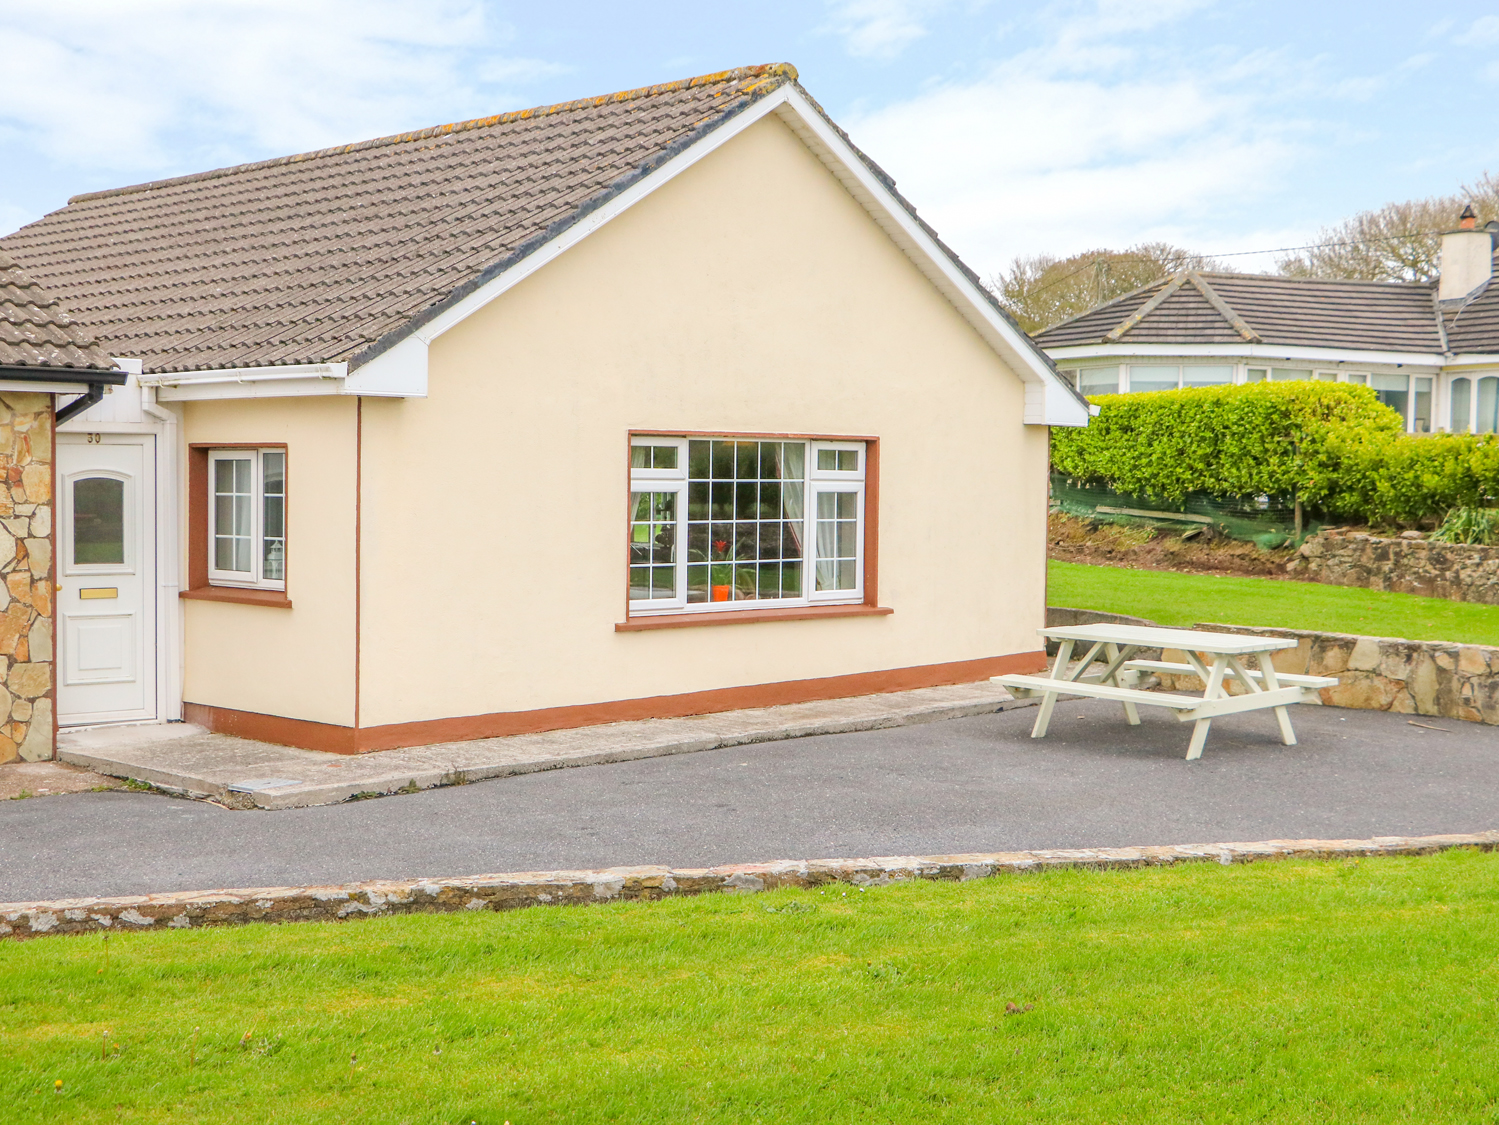 2 bedroom Cottage for rent in Ardmore